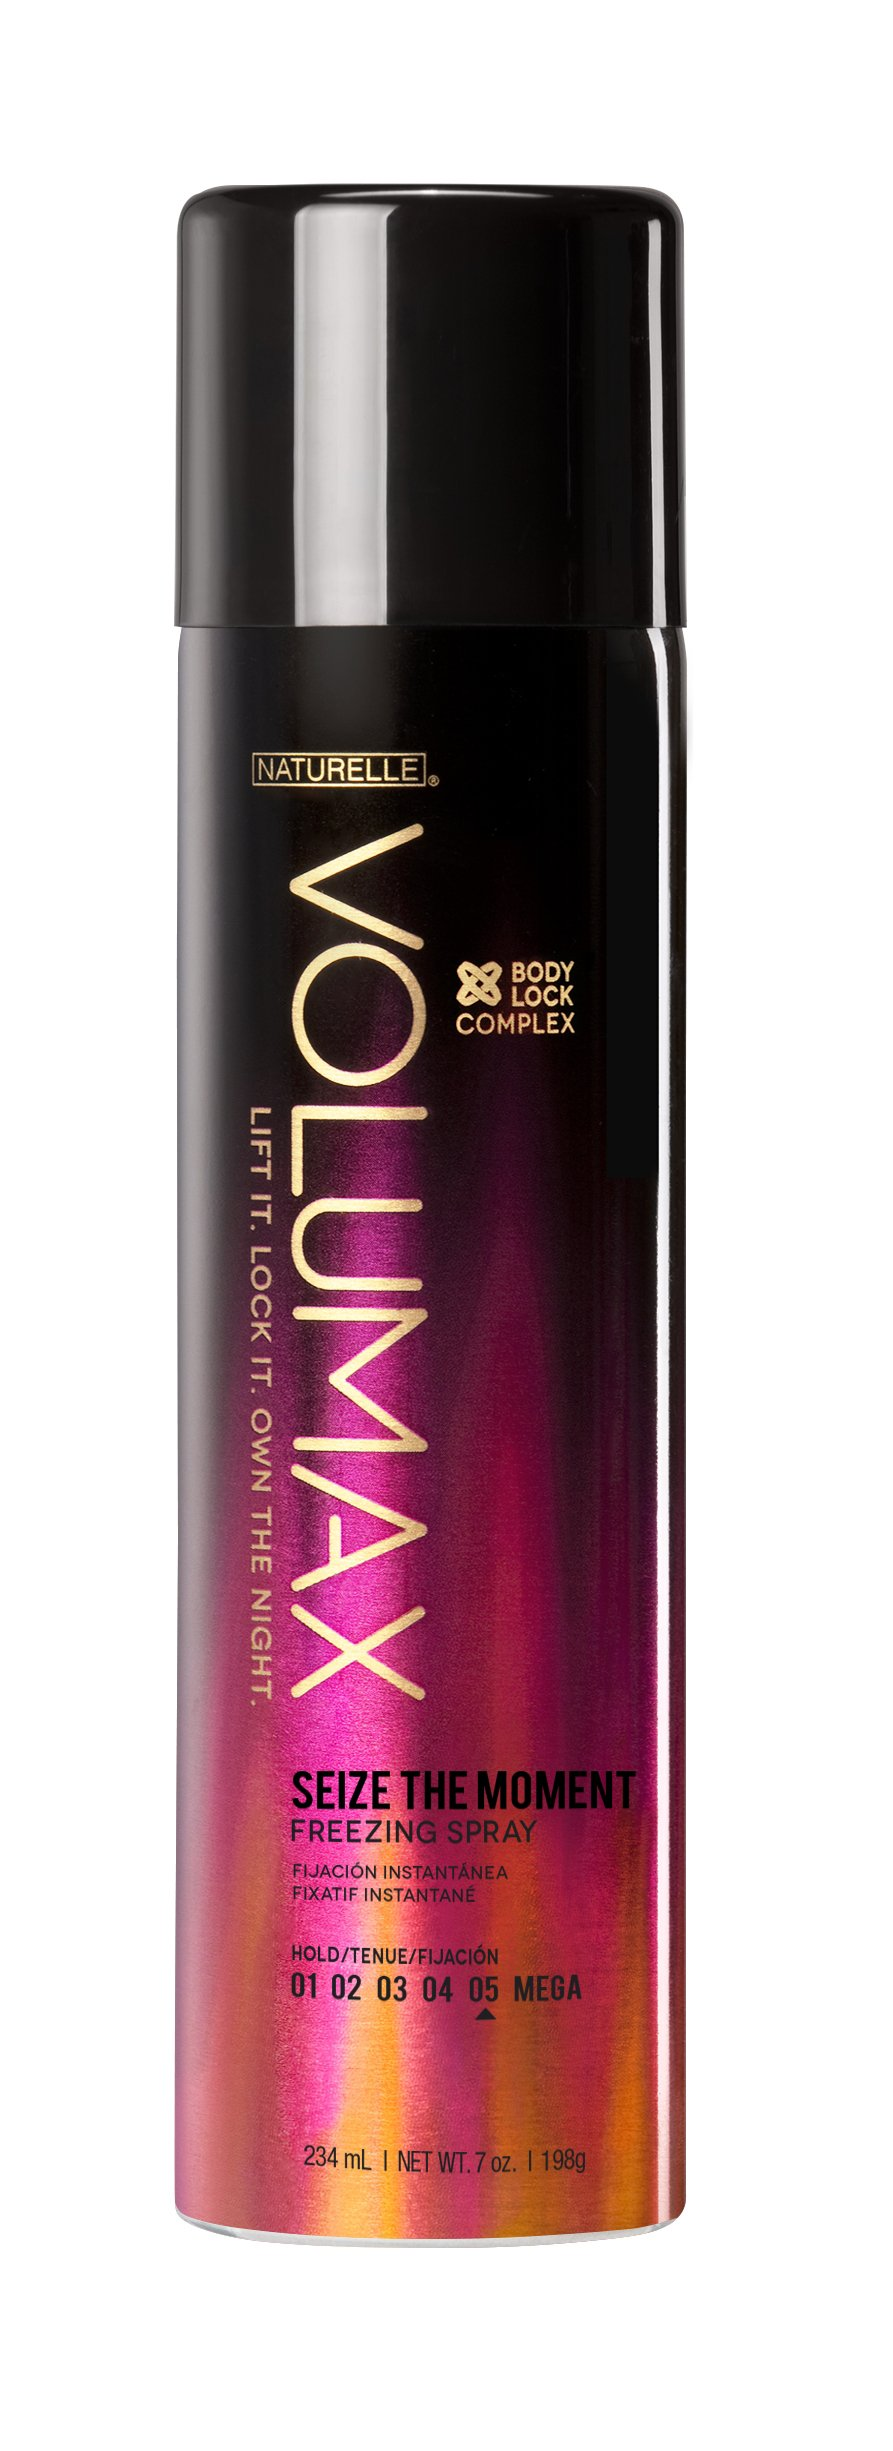 Volumax Seize The Moment Freezing Spray,55% VOC, 7-Ounce